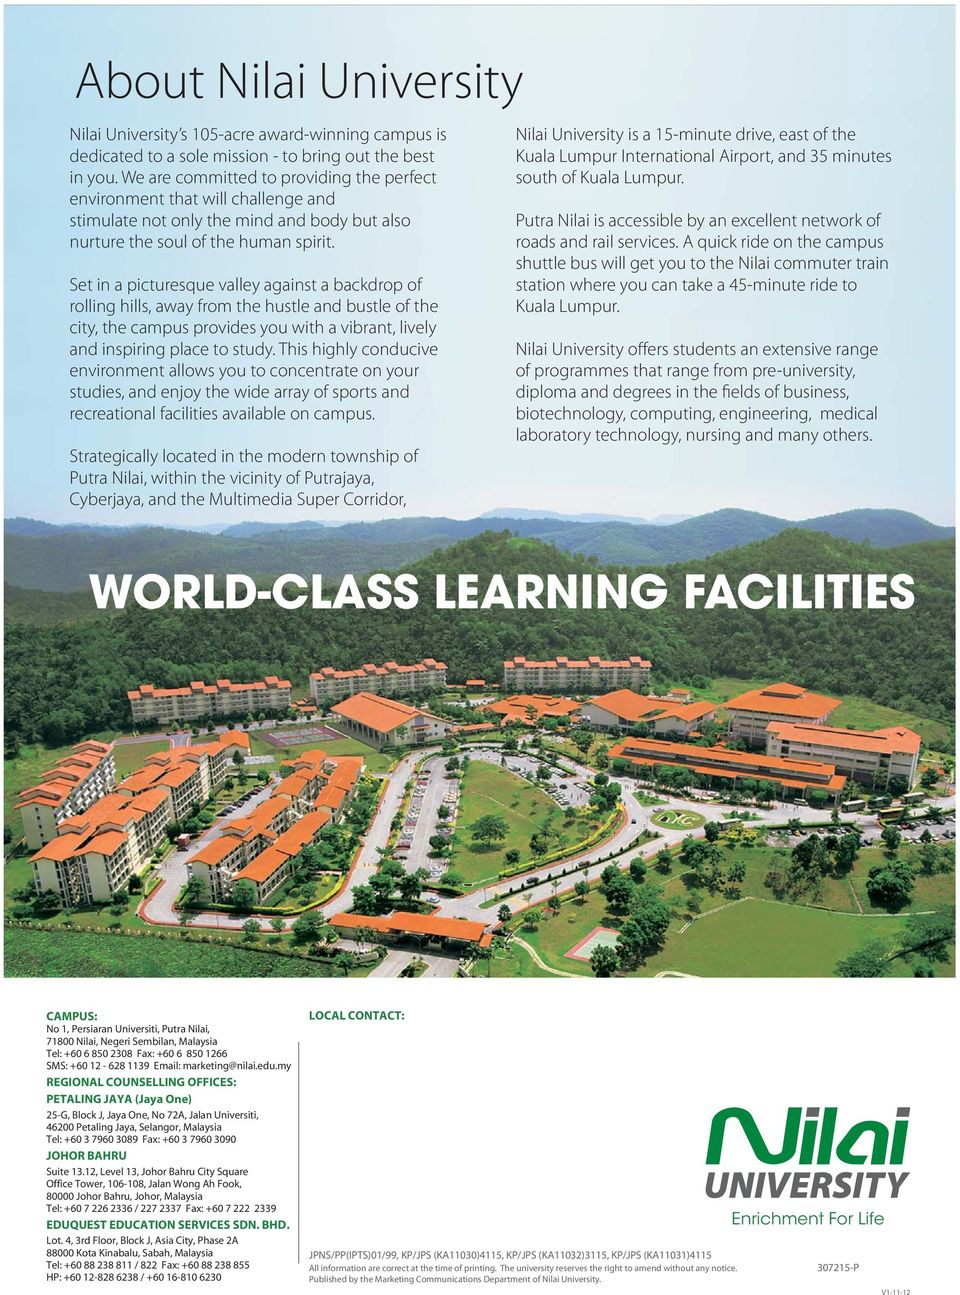 Set in a picturesque valley against a backdrop of rolling hills, away from the hustle and bustle of the city, the campus provides you with a vibrant, lively and inspiring place to study.